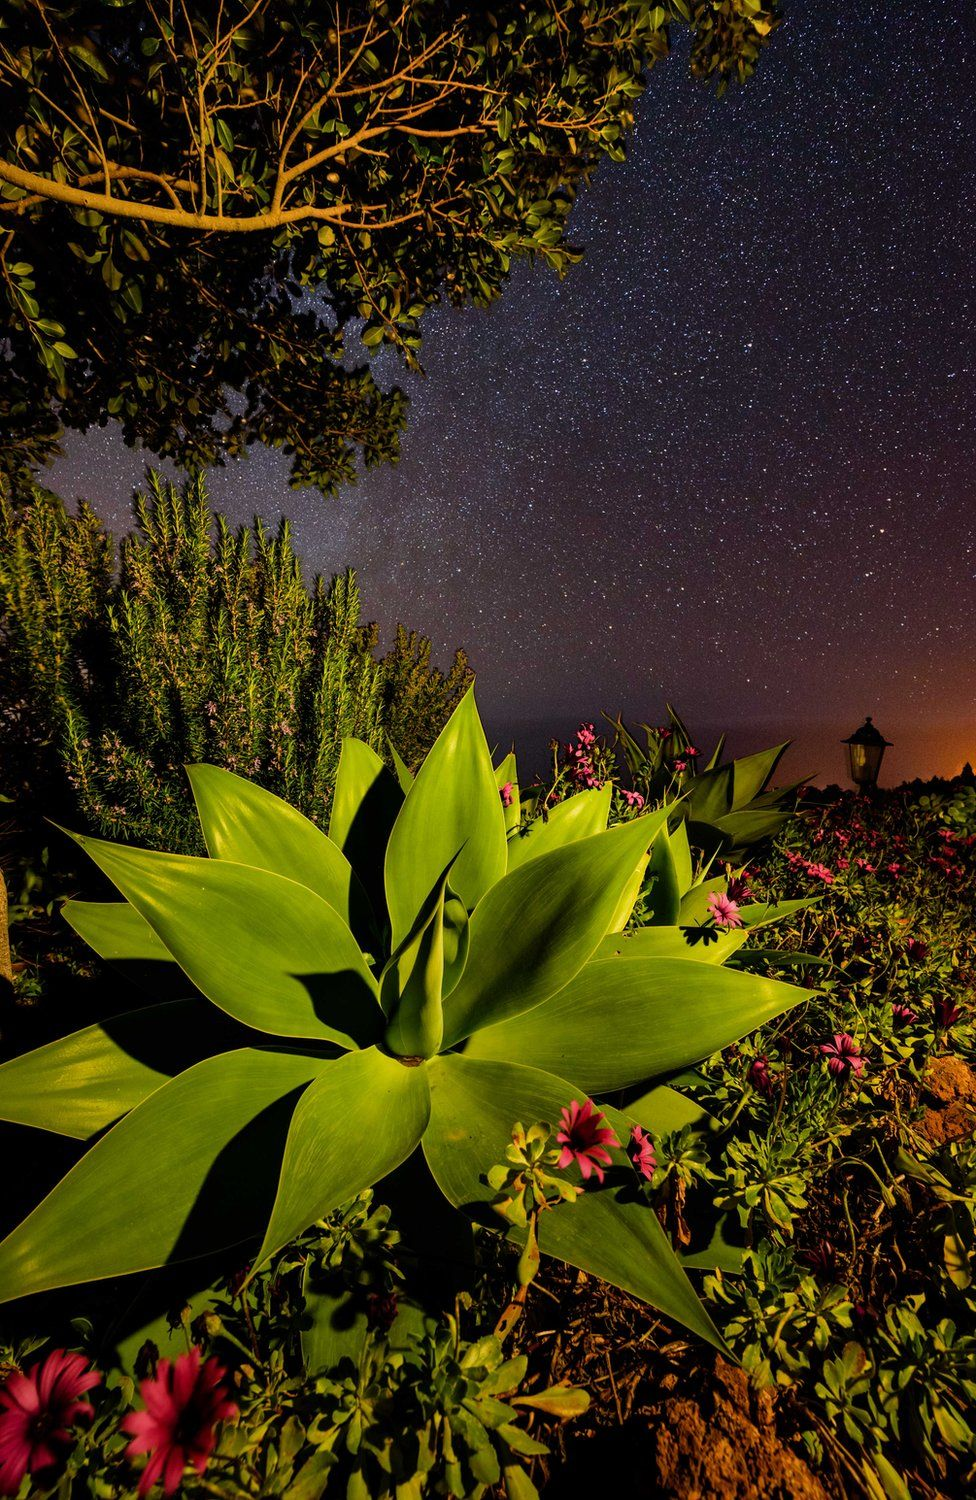 Trees, ferns and succulents are lit by a starry night